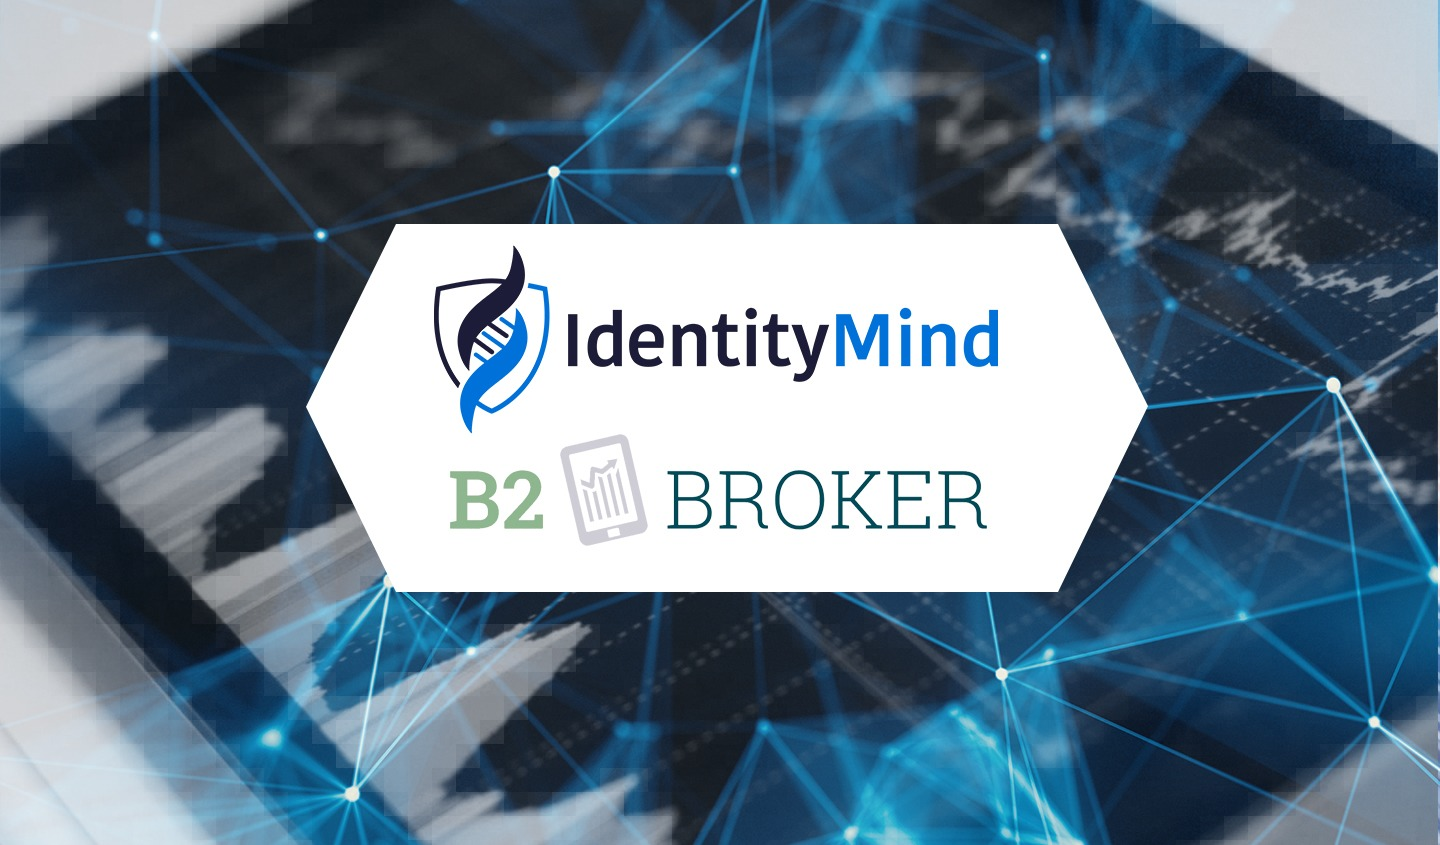 B2Broker Selects IdentityMind to Ensure KYC and AML Compliance for Itself and its Global Business-to-Business Clients